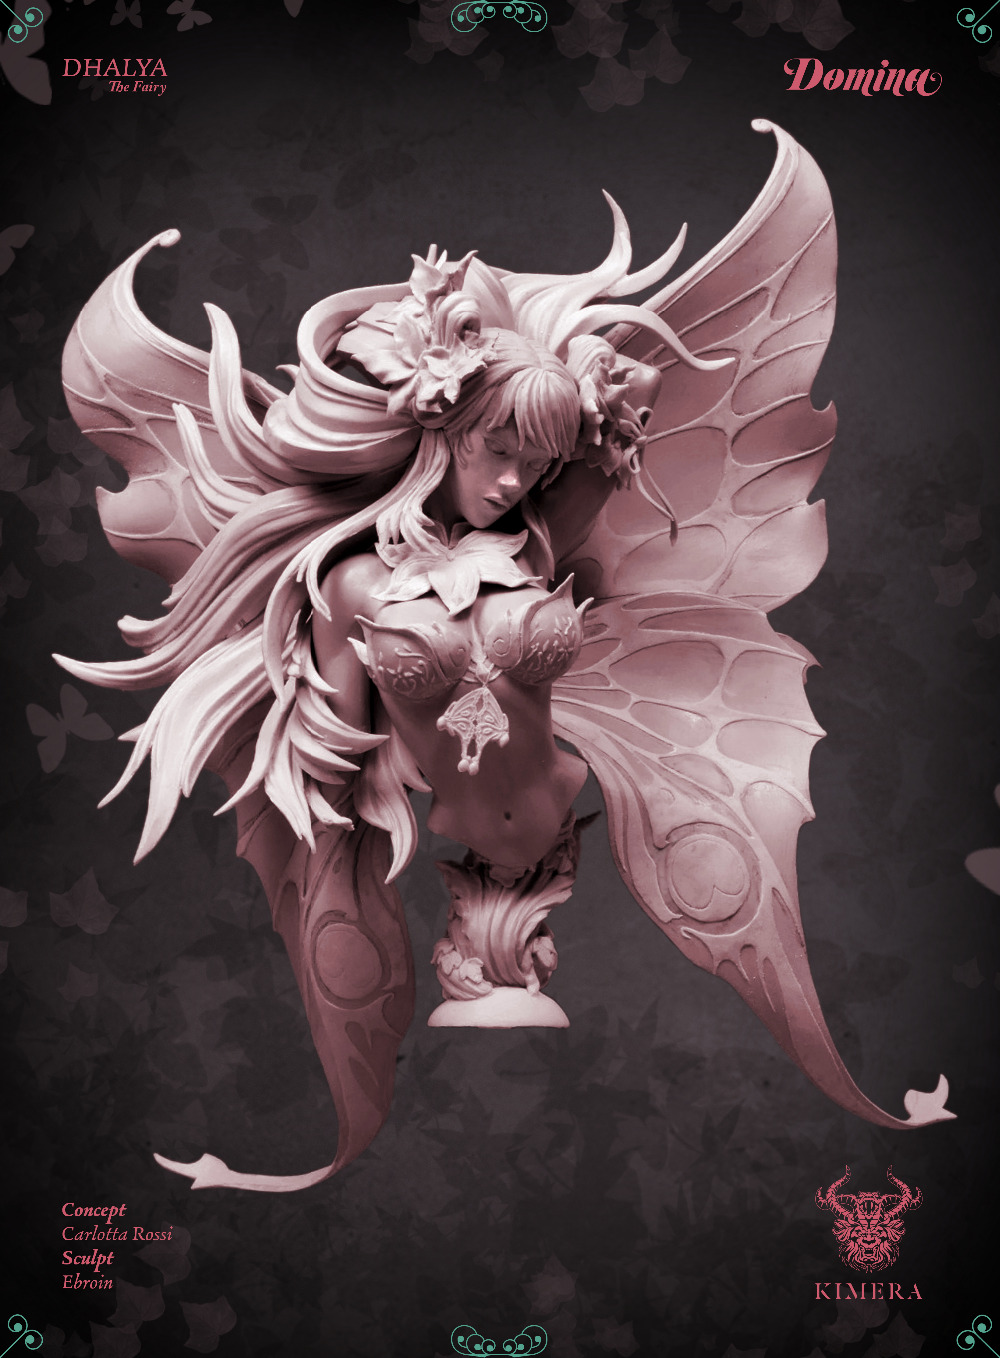 [Loong Way Miniatures] Kimera Models DHALYA THE FAIRY Bust Resin Miniature